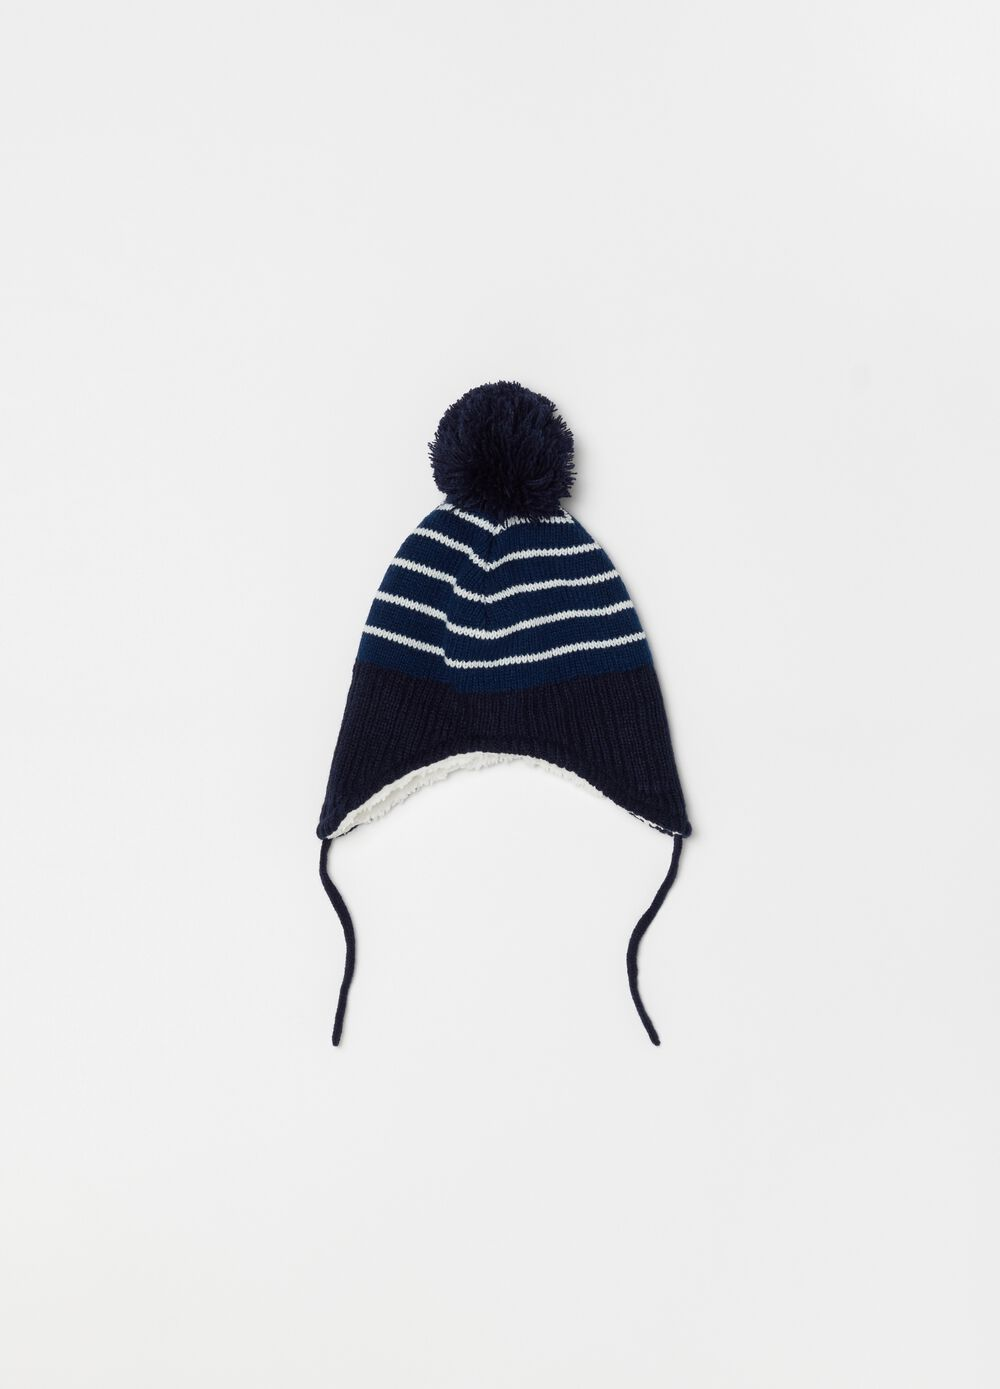 Knitted hat with stripes and pompom